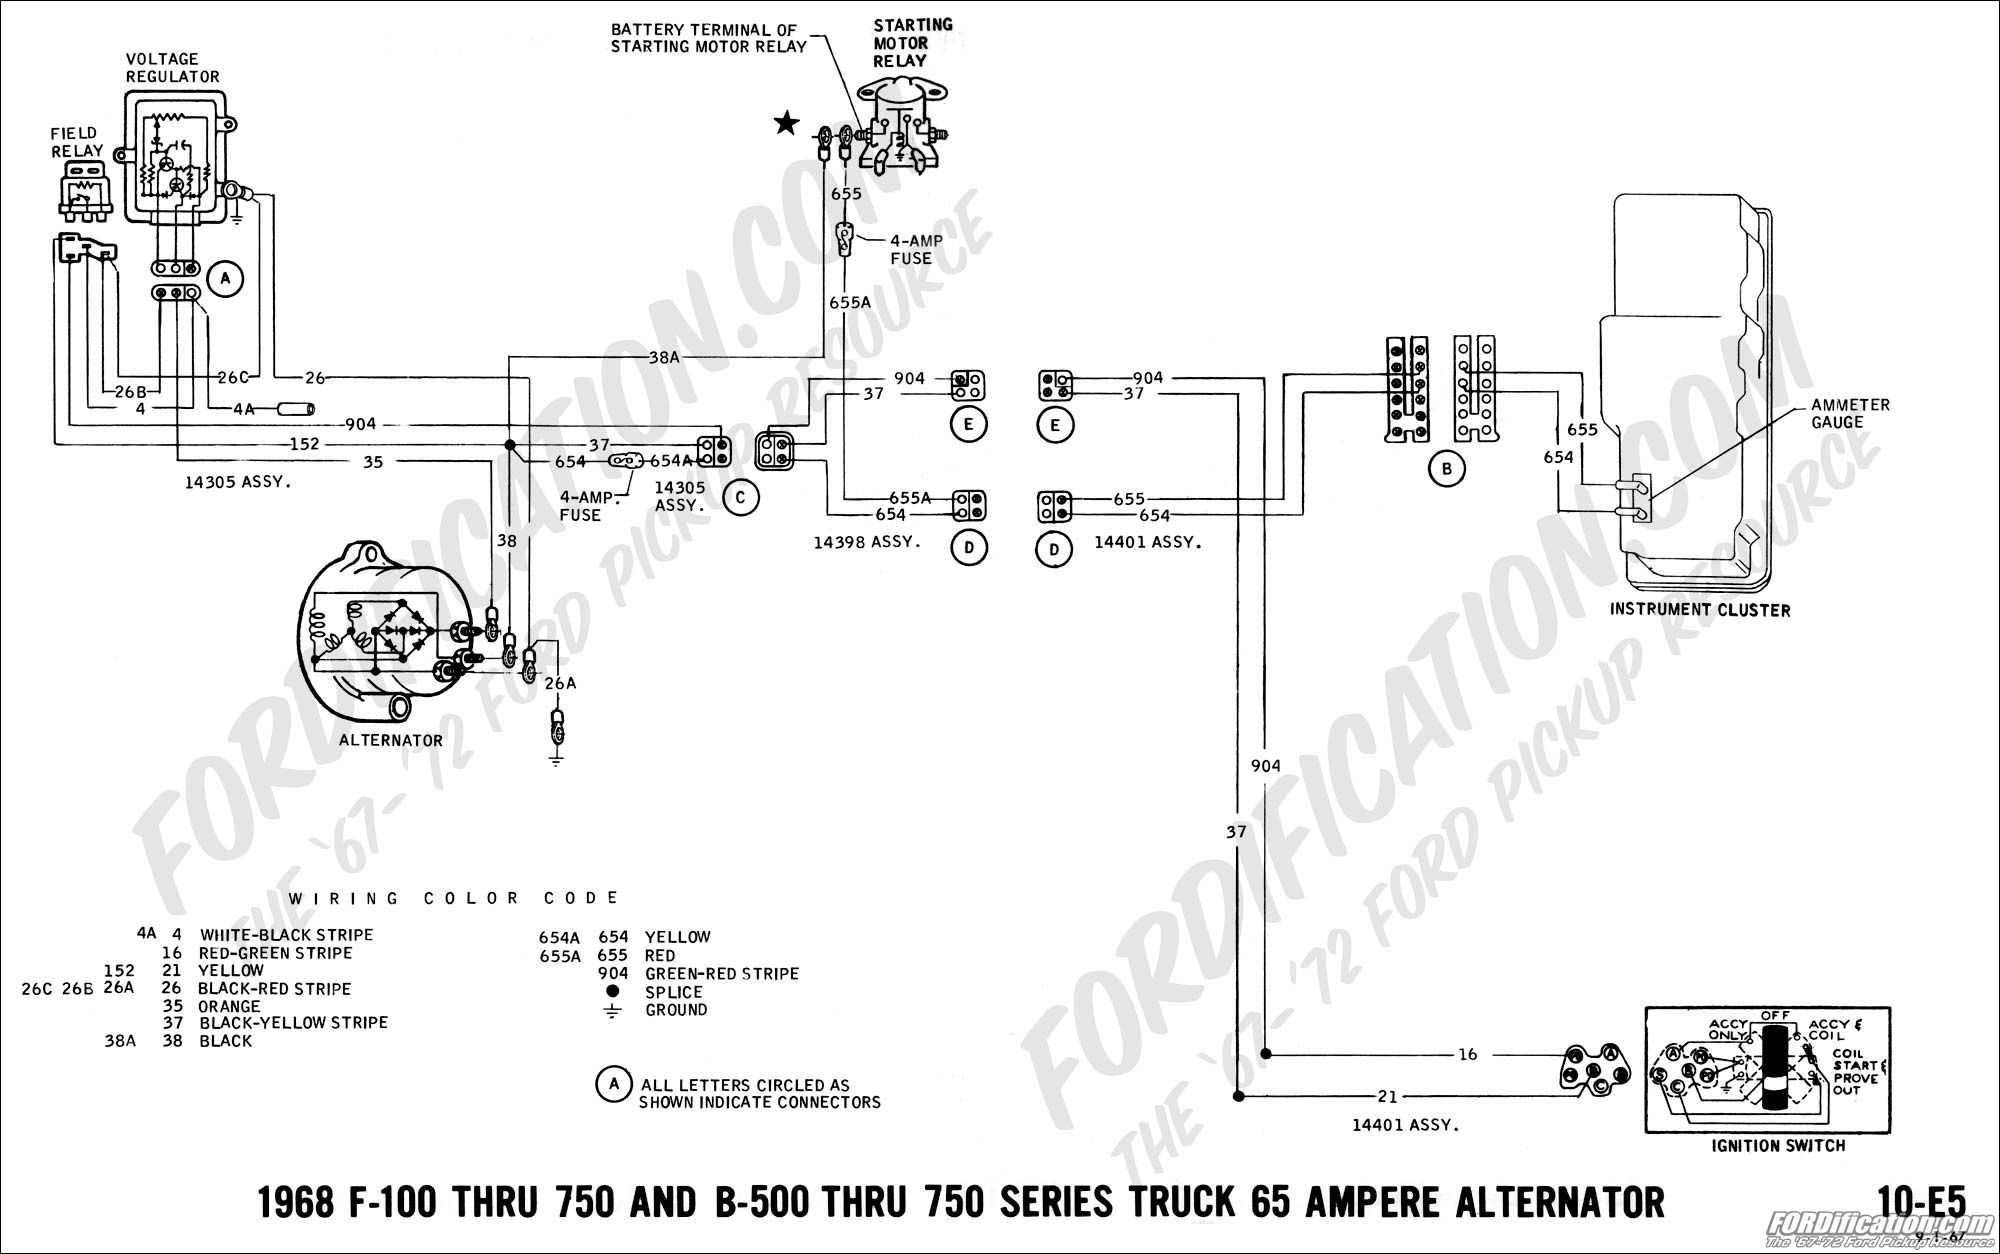 1669 f150 wiring diagram wiring diagram pass 1669 f150 wiring diagram [ 2000 x 1254 Pixel ]